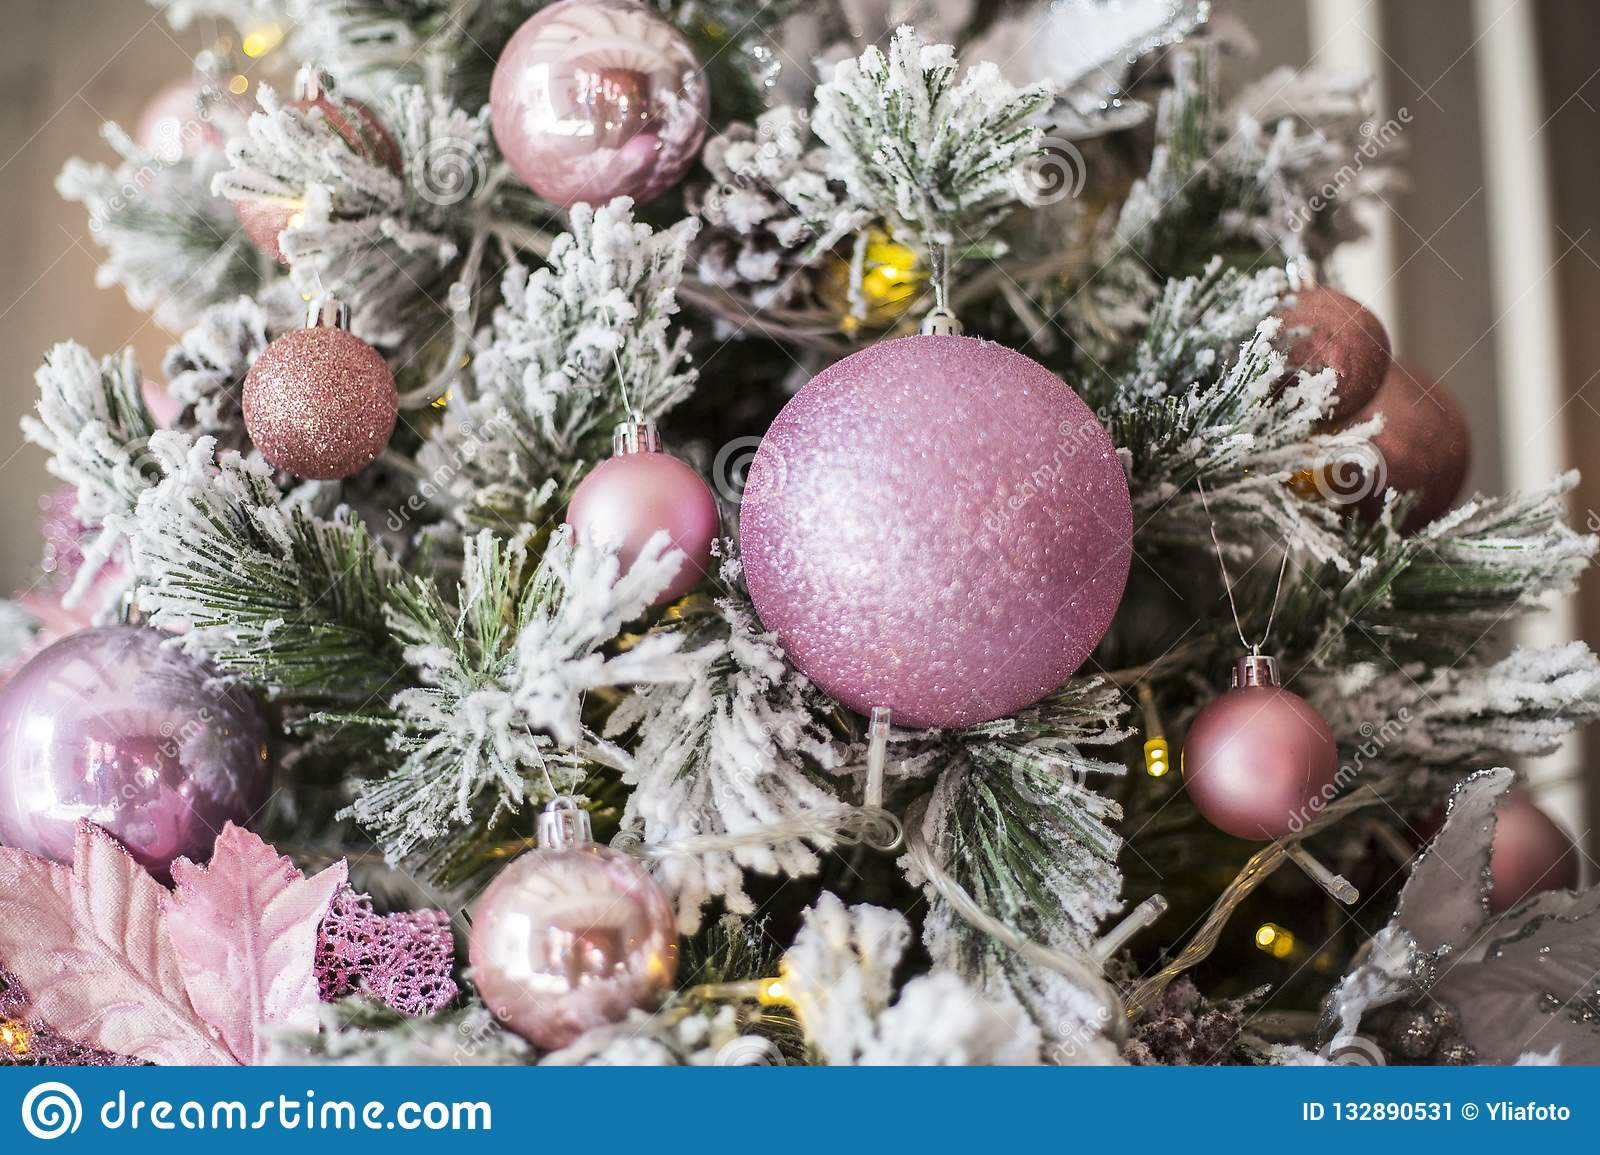 Pink Christmas Tree Decorations In Stock Image Image Of Greens